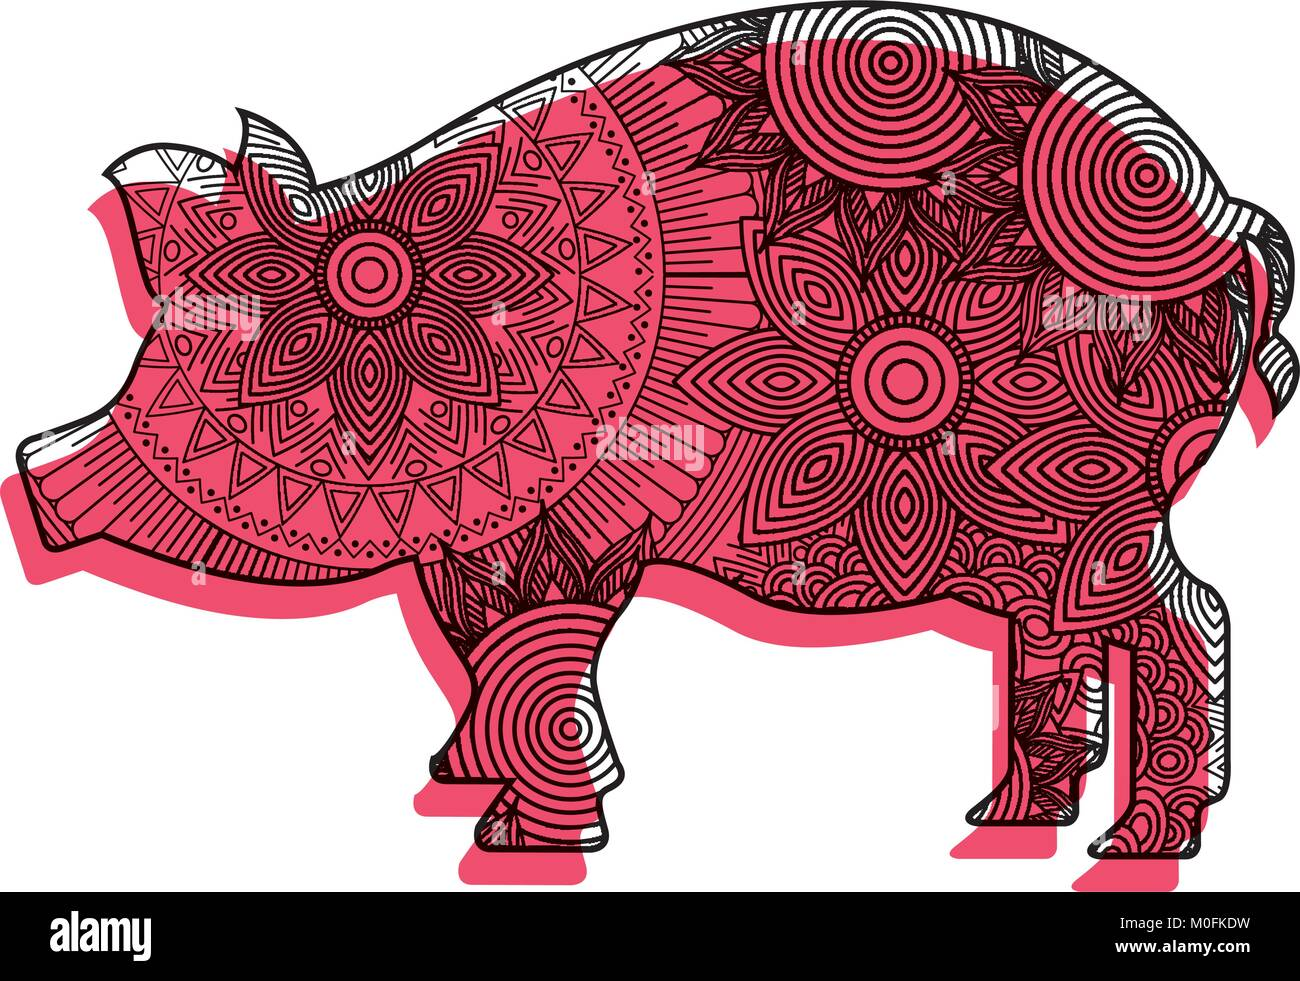 Pig Illustration Meat Stockfotos & Pig Illustration Meat Bilder - Alamy